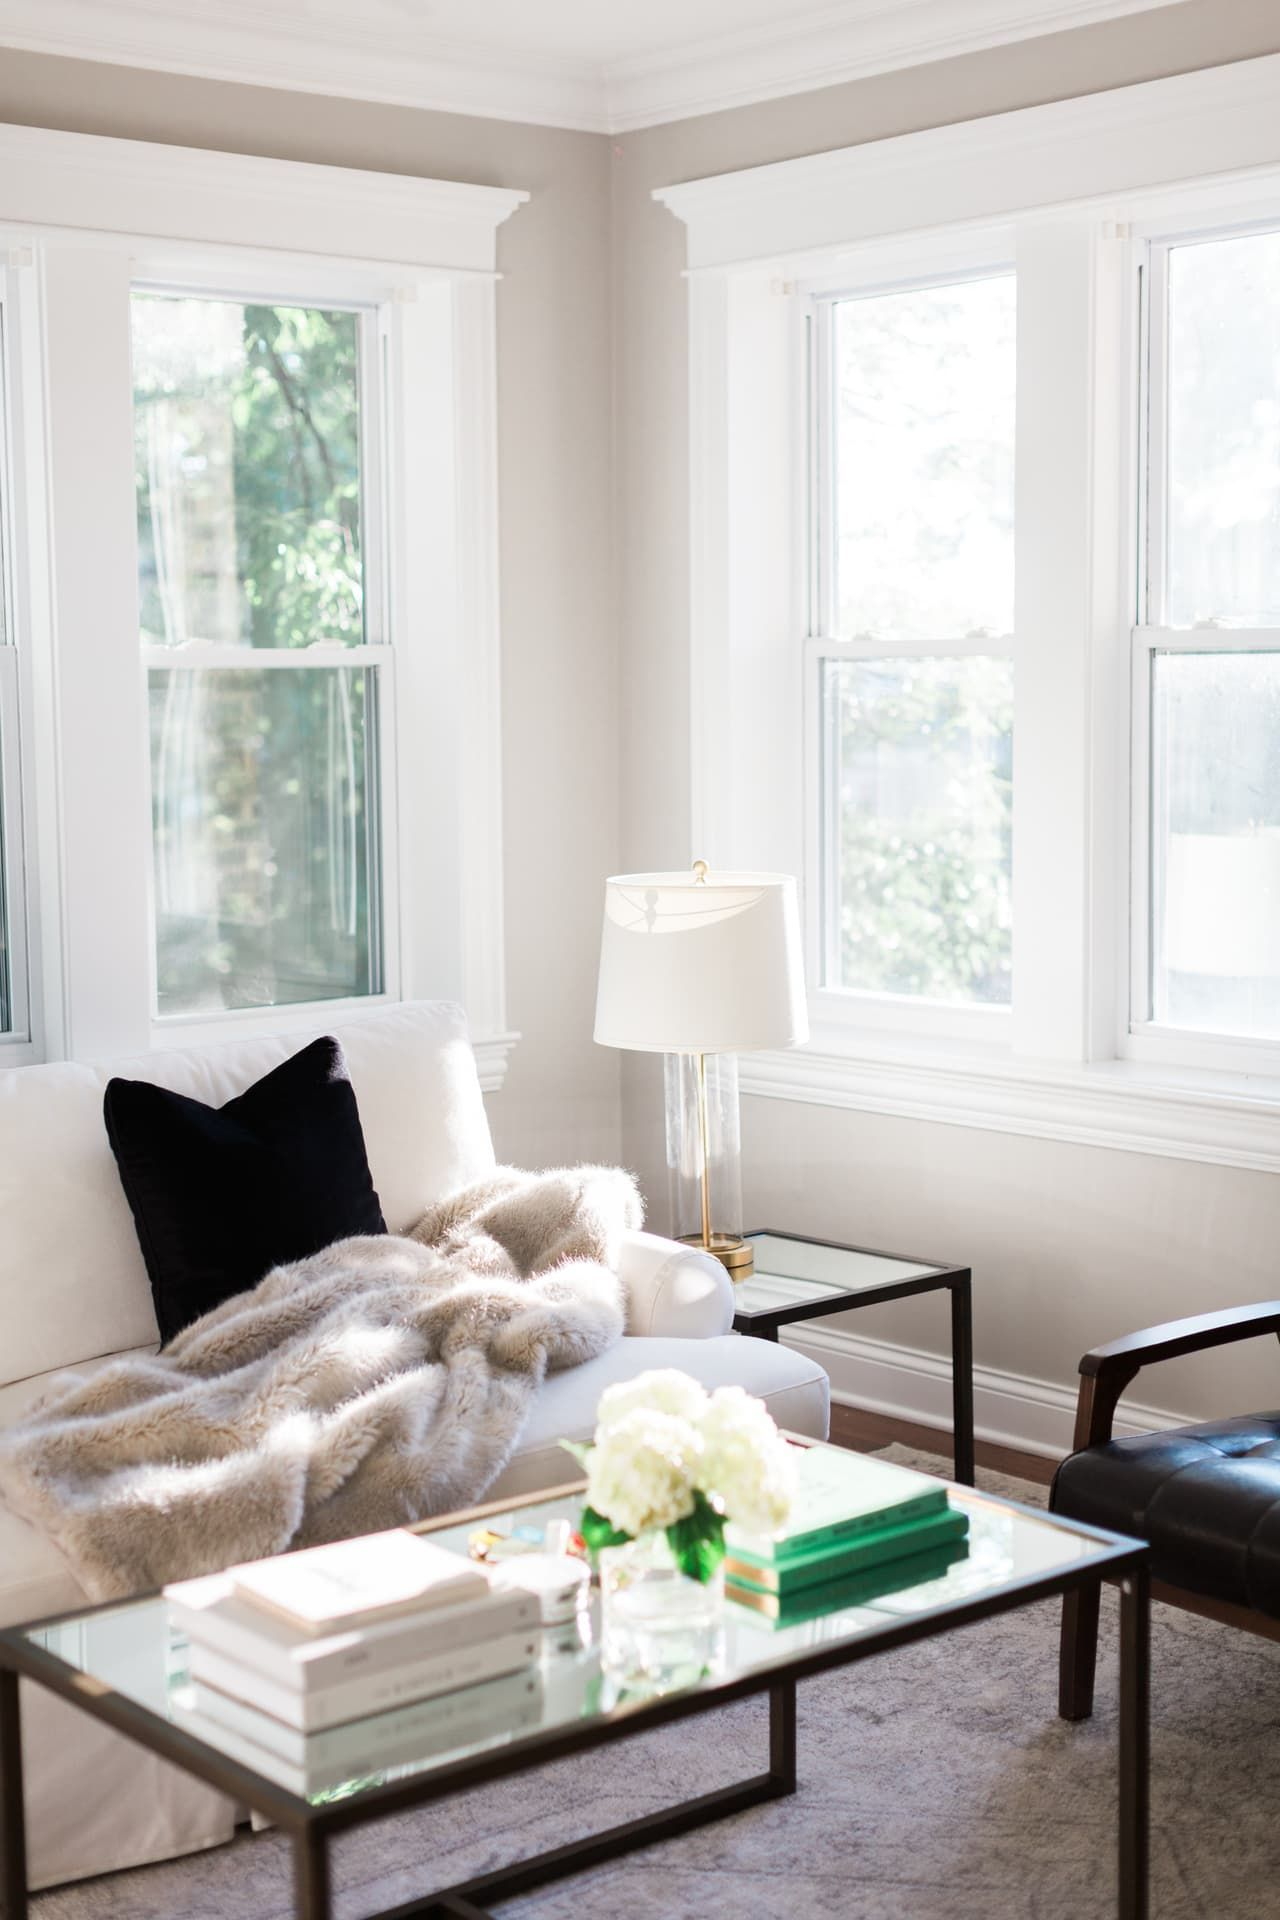 House Tour: A Chic Classic Home in Chicago | Chicago, House tours ...